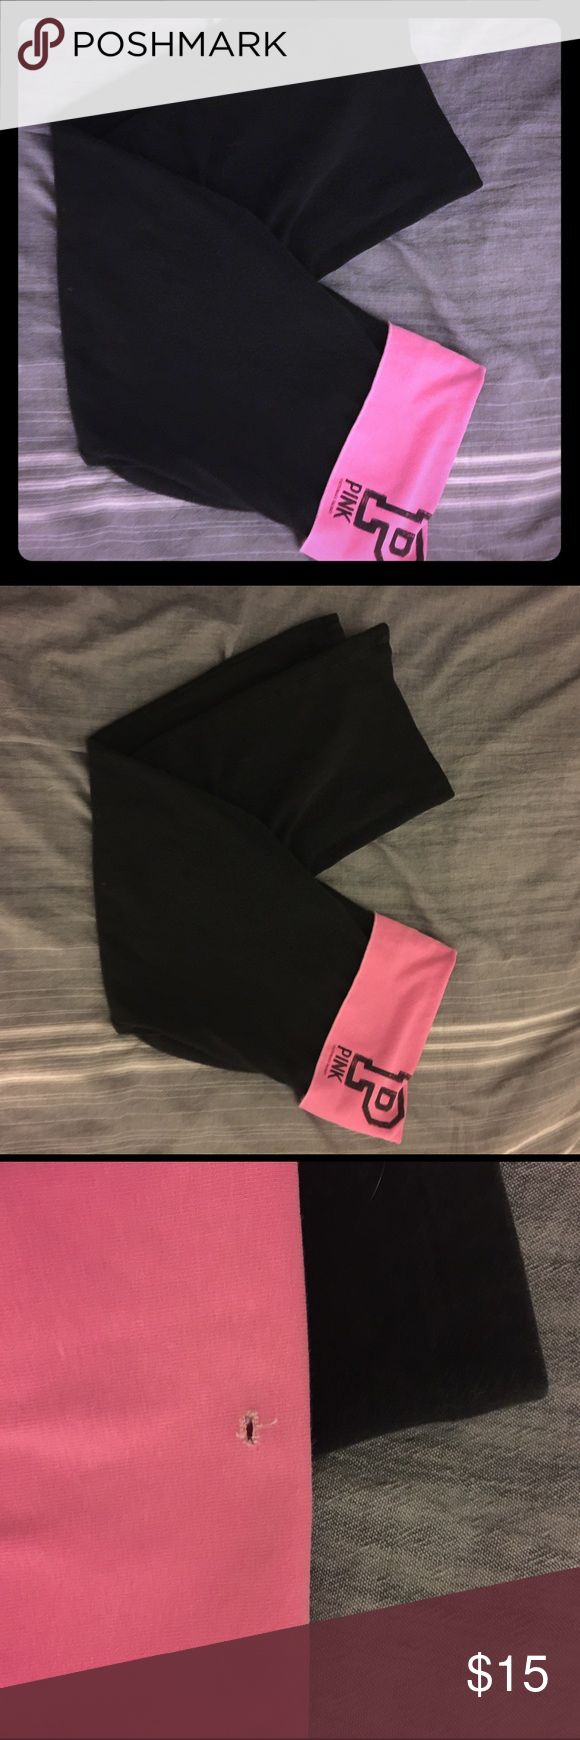 VS pink capris Stretchy material-- VS PINK Capri leggings. Used but still in good shape aside from a small hole on the top fold over portion. PINK Victoria's Secret Pants Capris